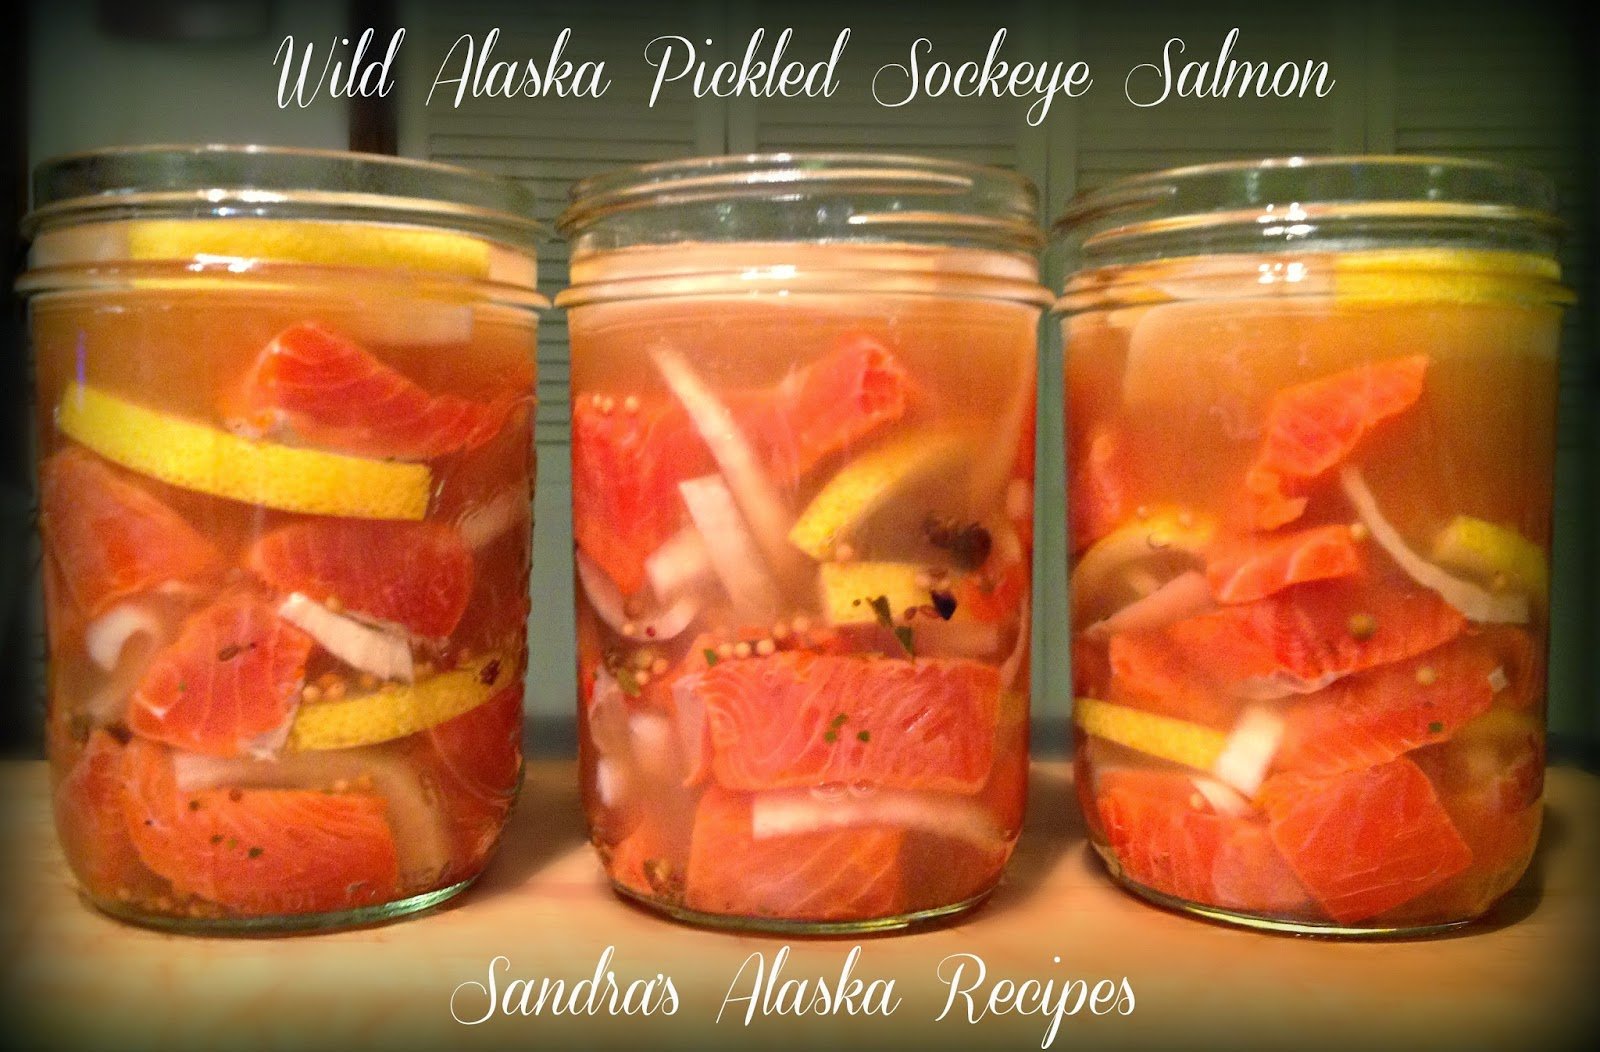 How to pickle salmon at home - 12 step-by-step recipes 5